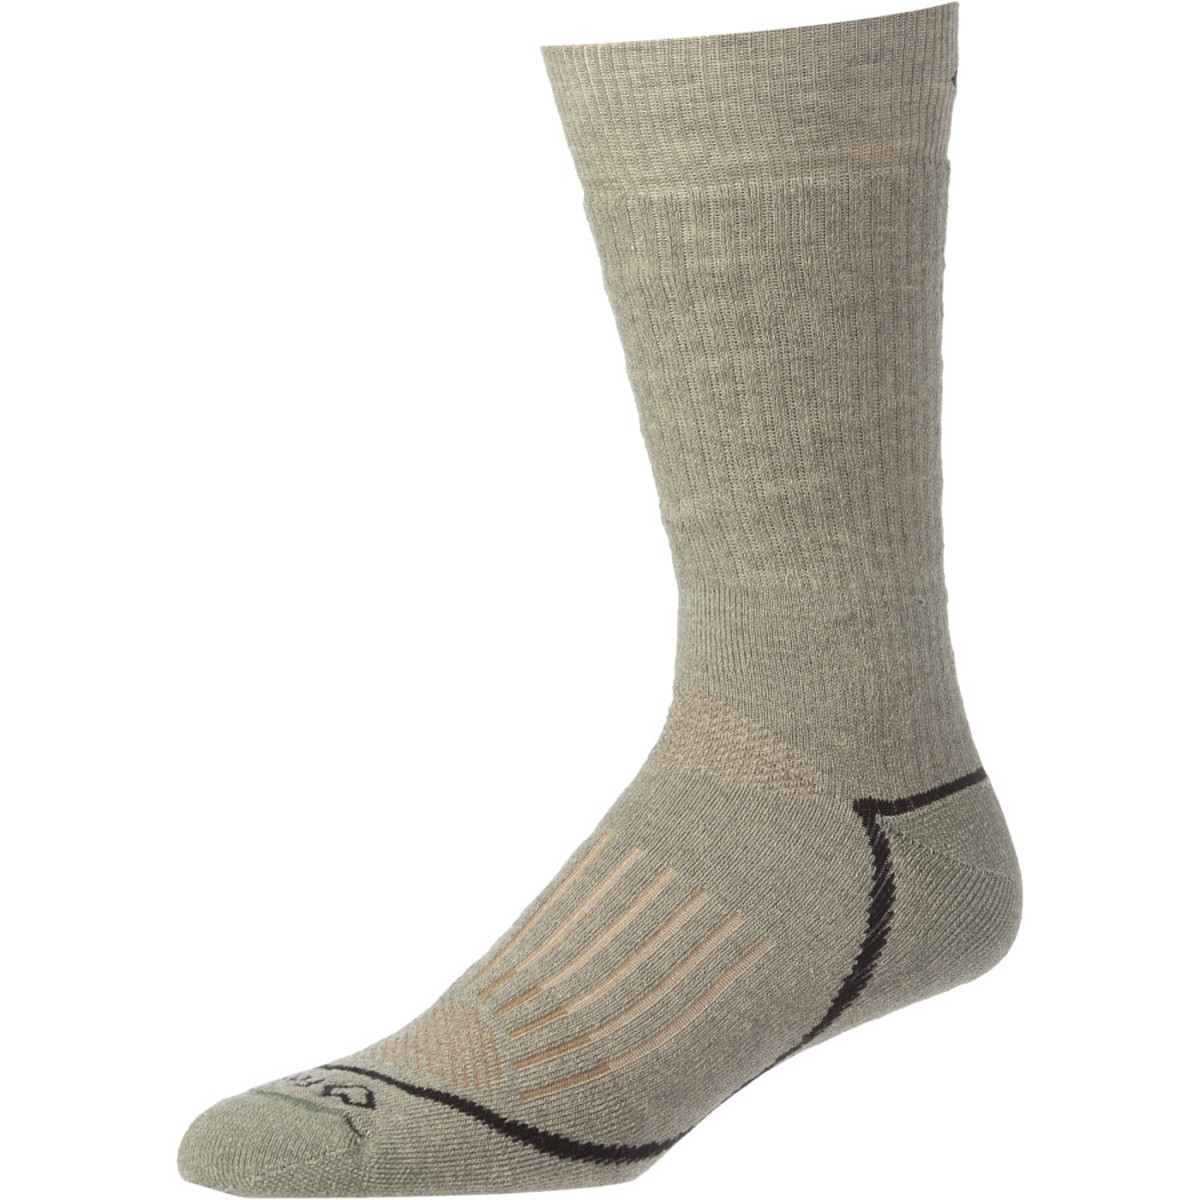 Fox River Pioneer Crew Socks